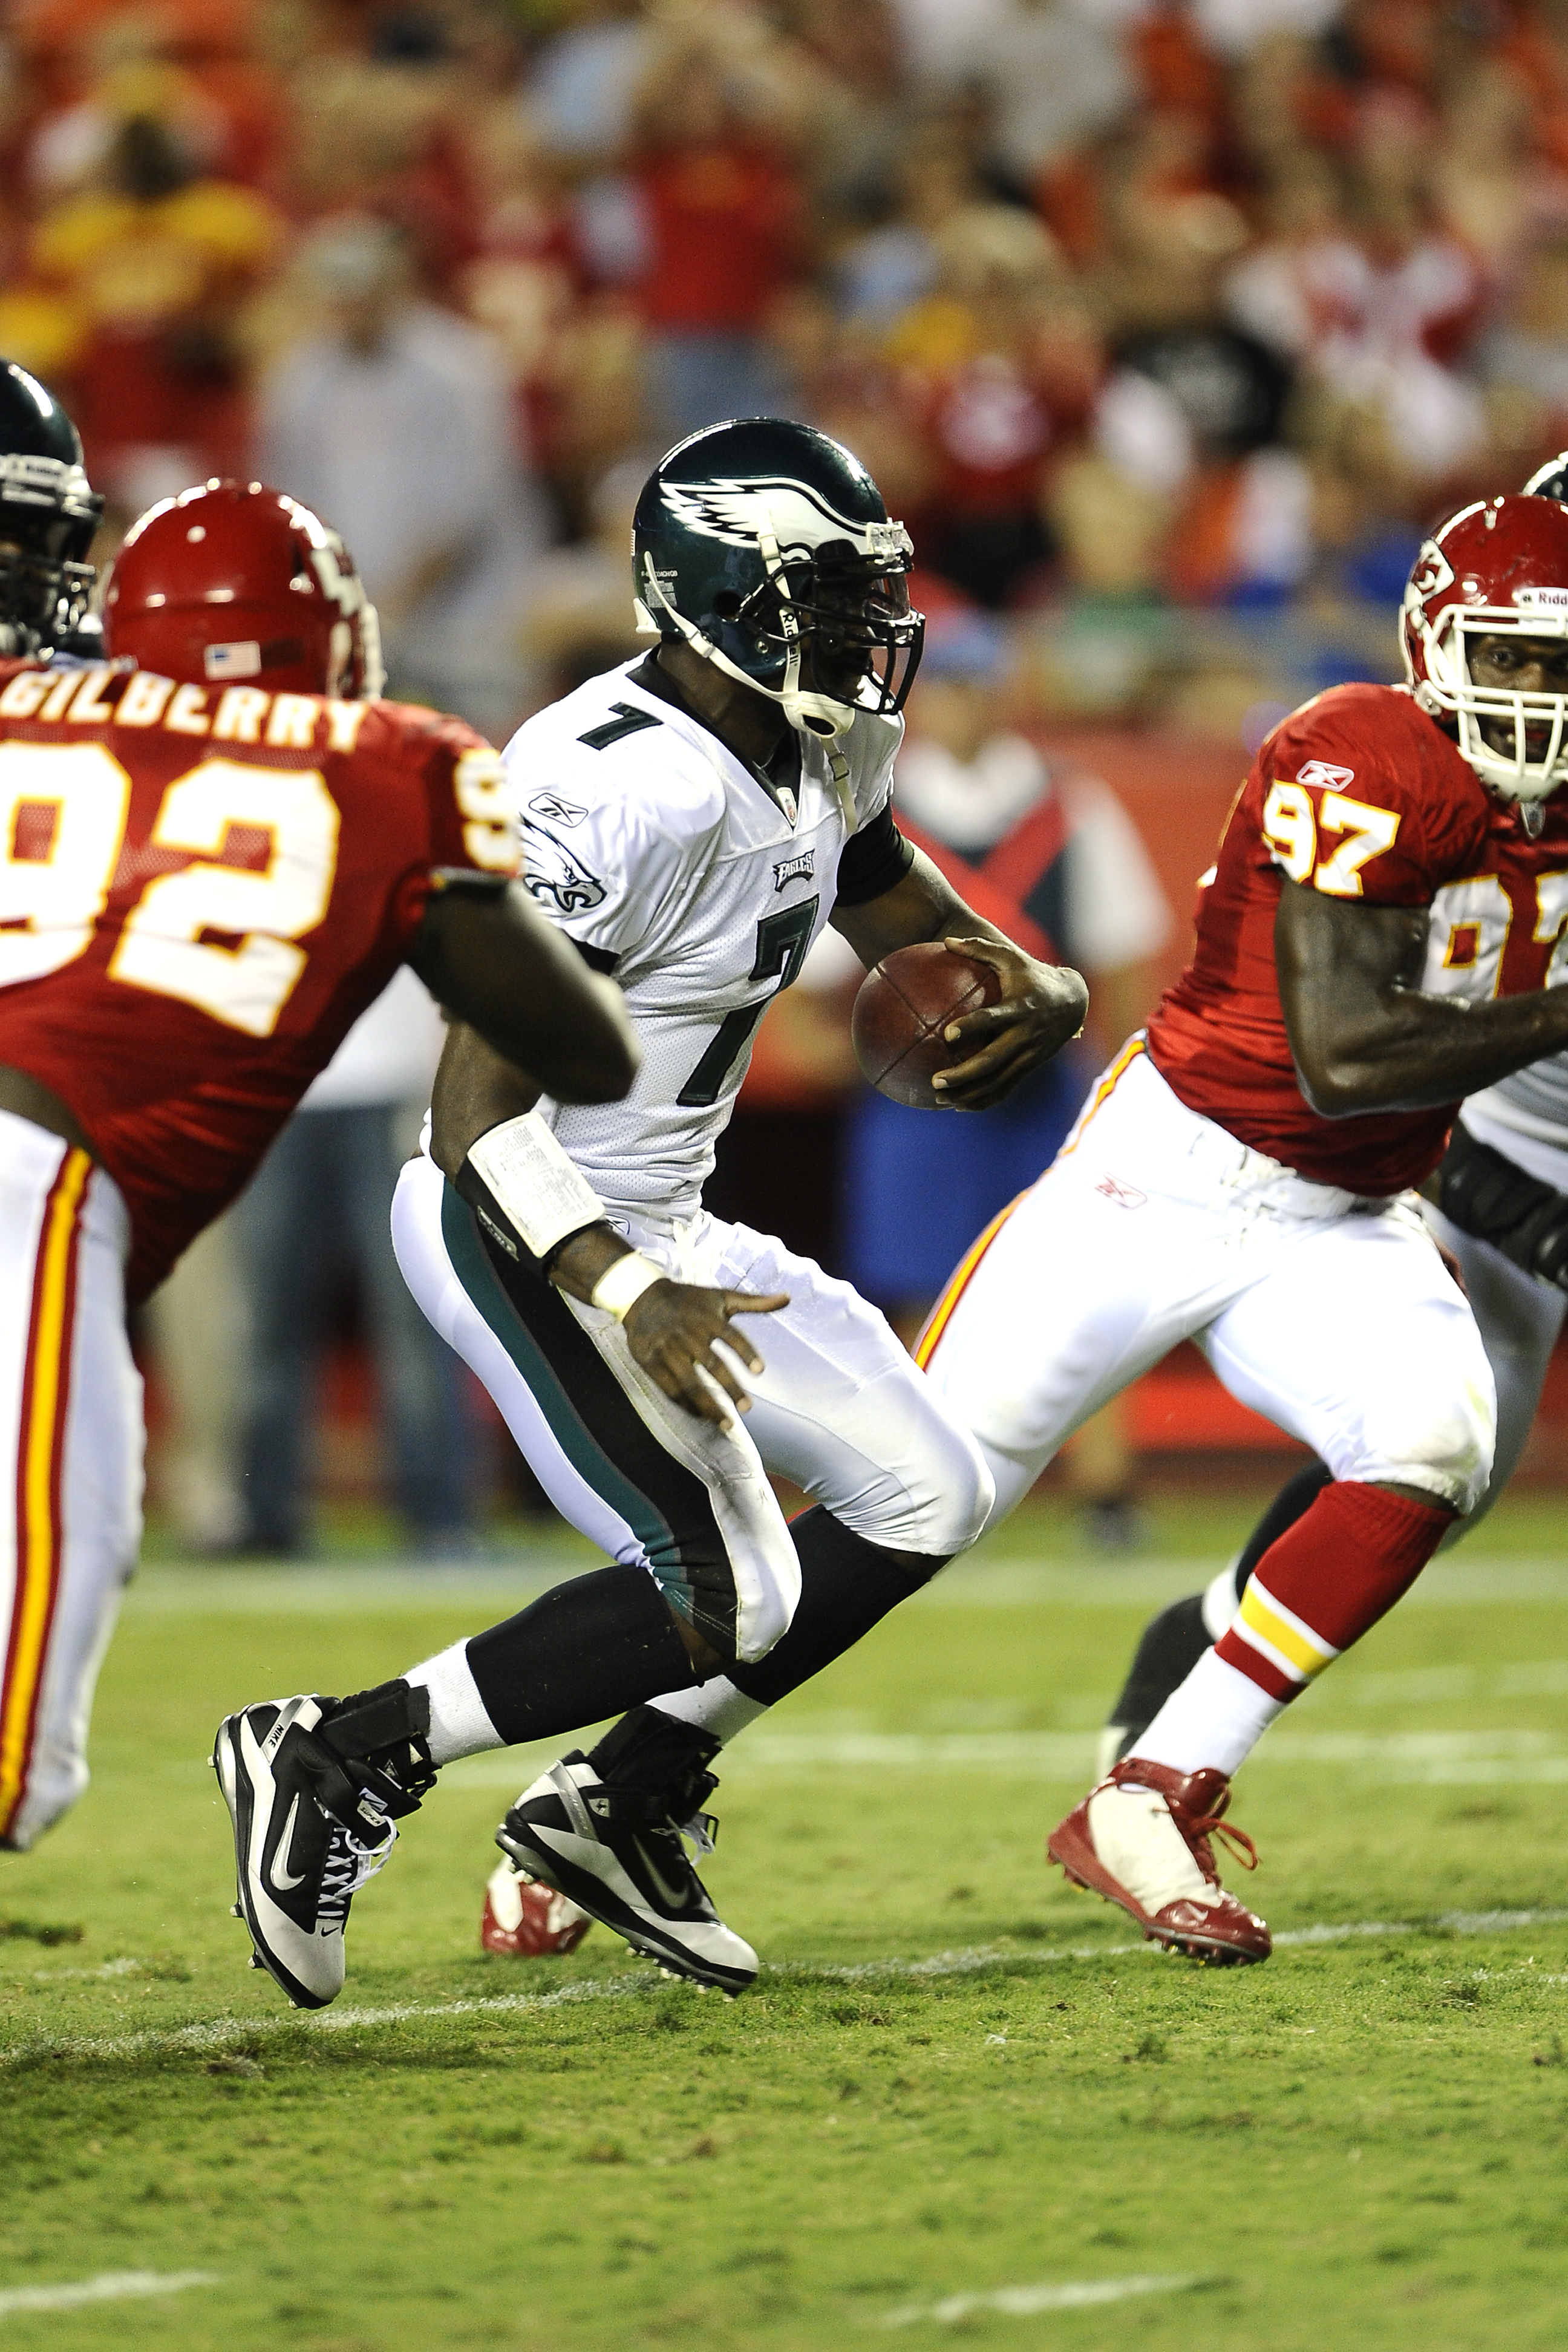 KANSAS CITY, MO - AUGUST 27: Michael Vick #7 of the Philadelphia Eagles runs for yardage against the Kansas City Chiefs during a preseason game at Arrowhead Stadium on August 27, 2010 in Kansas City, Missouri.  (Photo by G. Newman Lowrance/Getty Images)